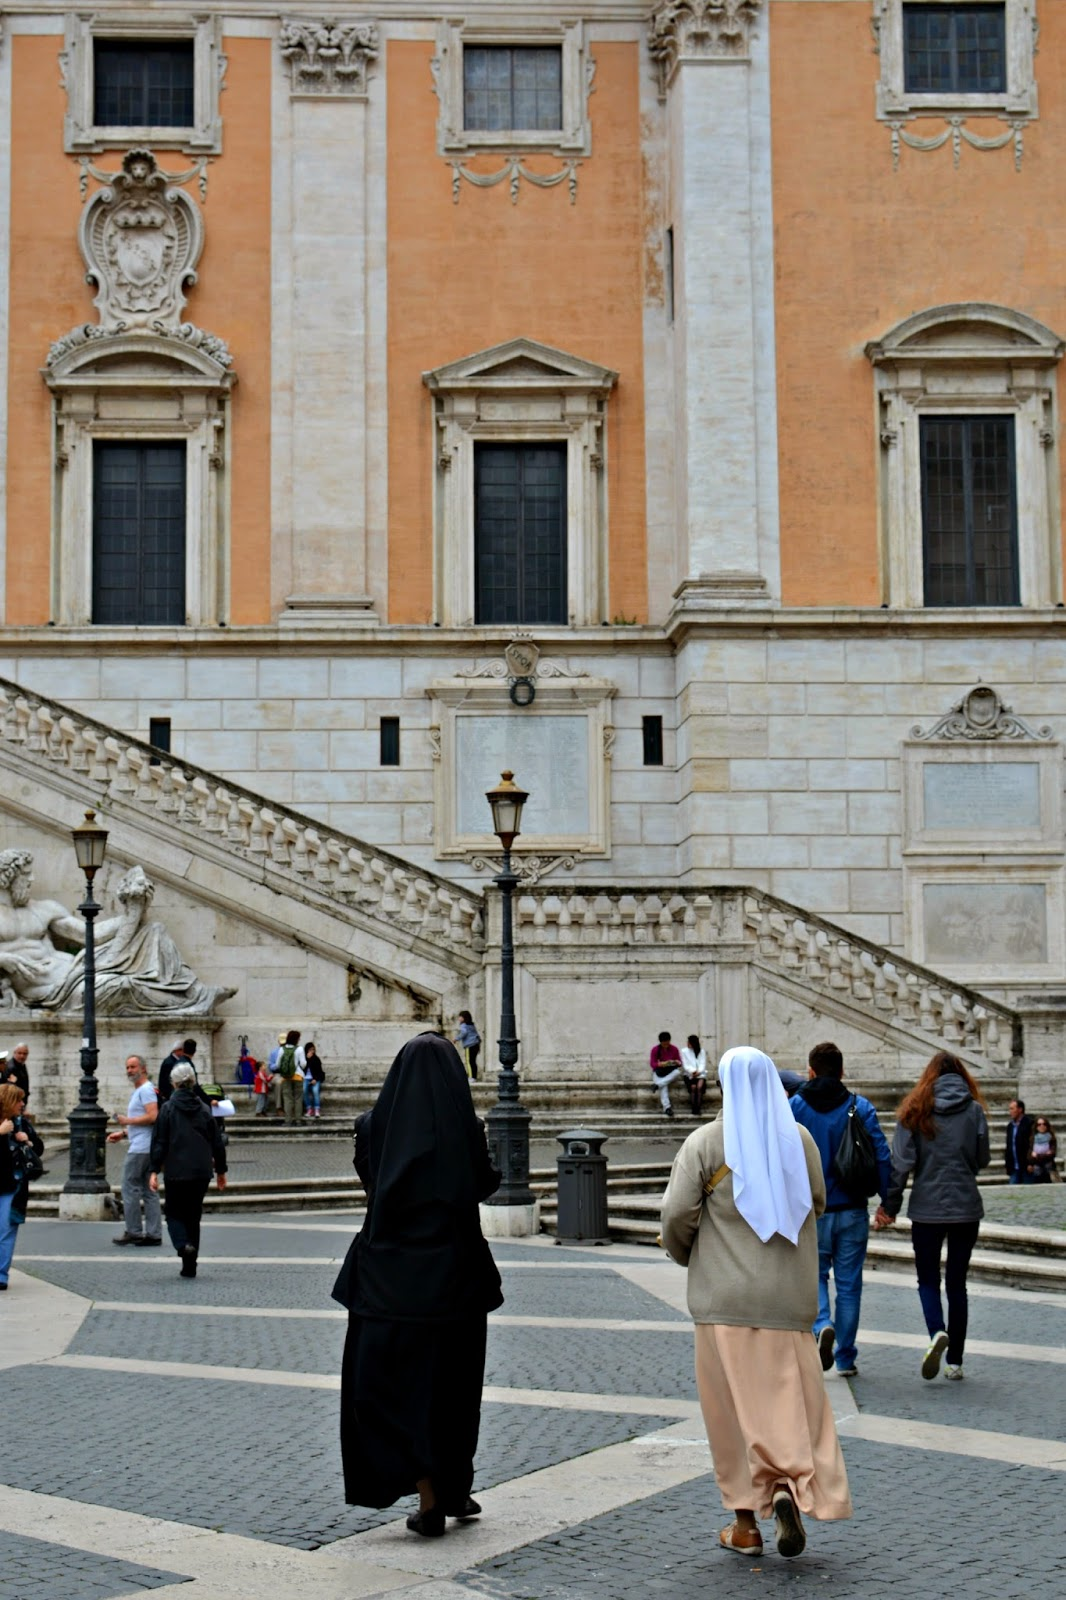 Nuns walking through a Piazza in Rome in front of a church